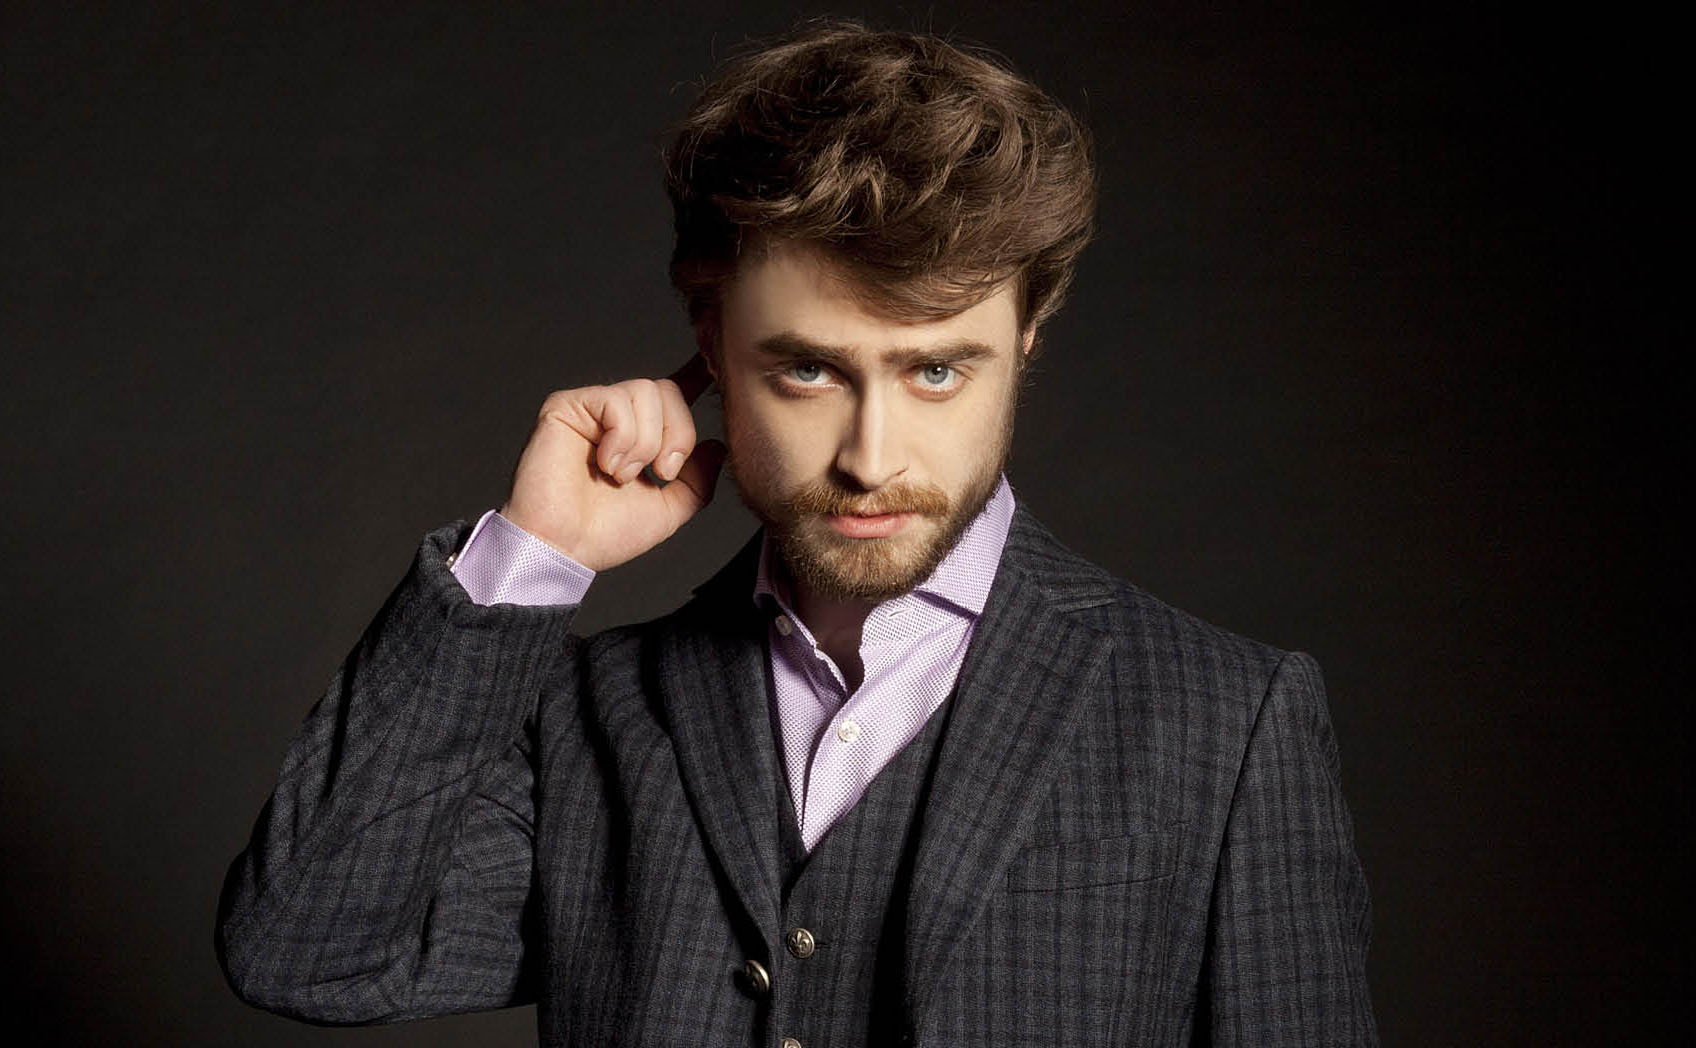 Actor Daniel Radcliffe - age: 31